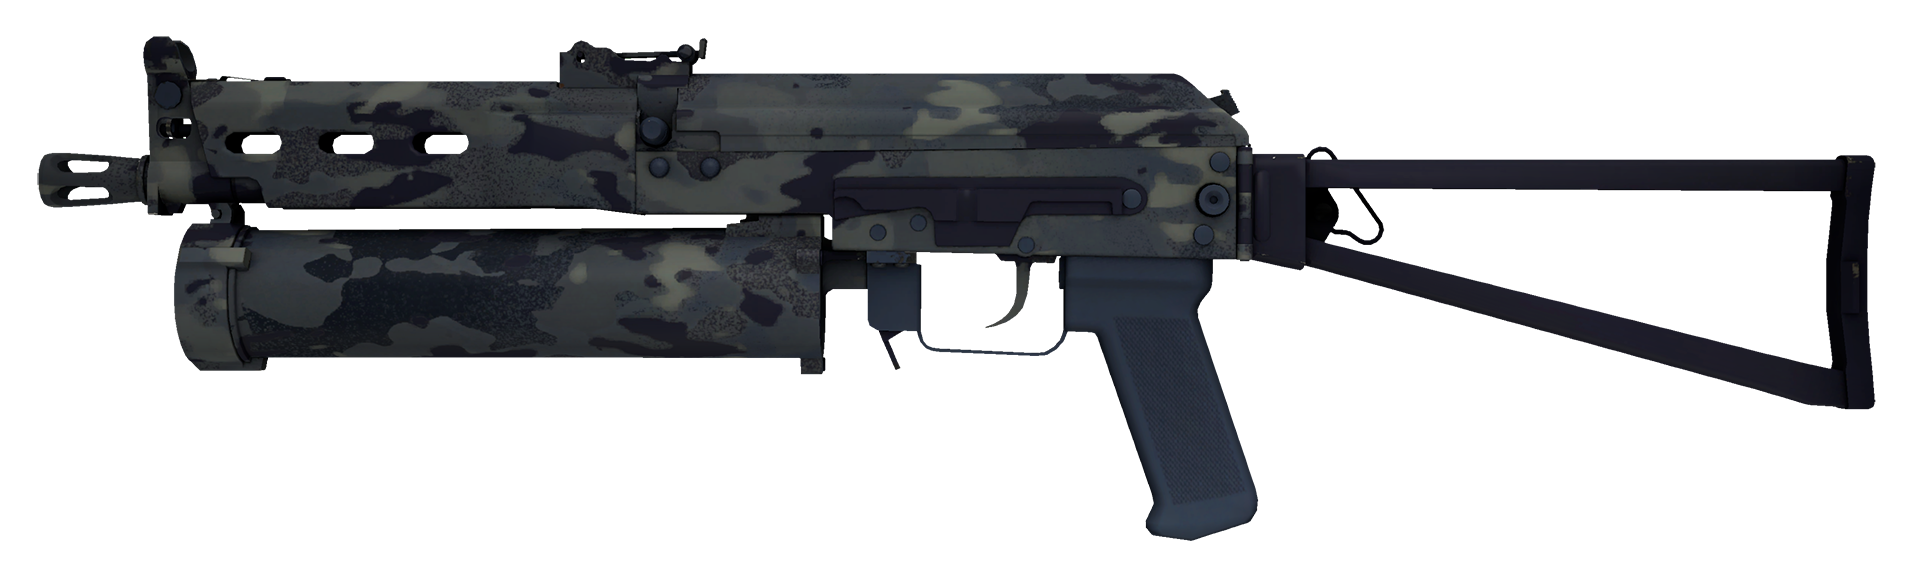 PP-Bizon Night Ops Large Rendering